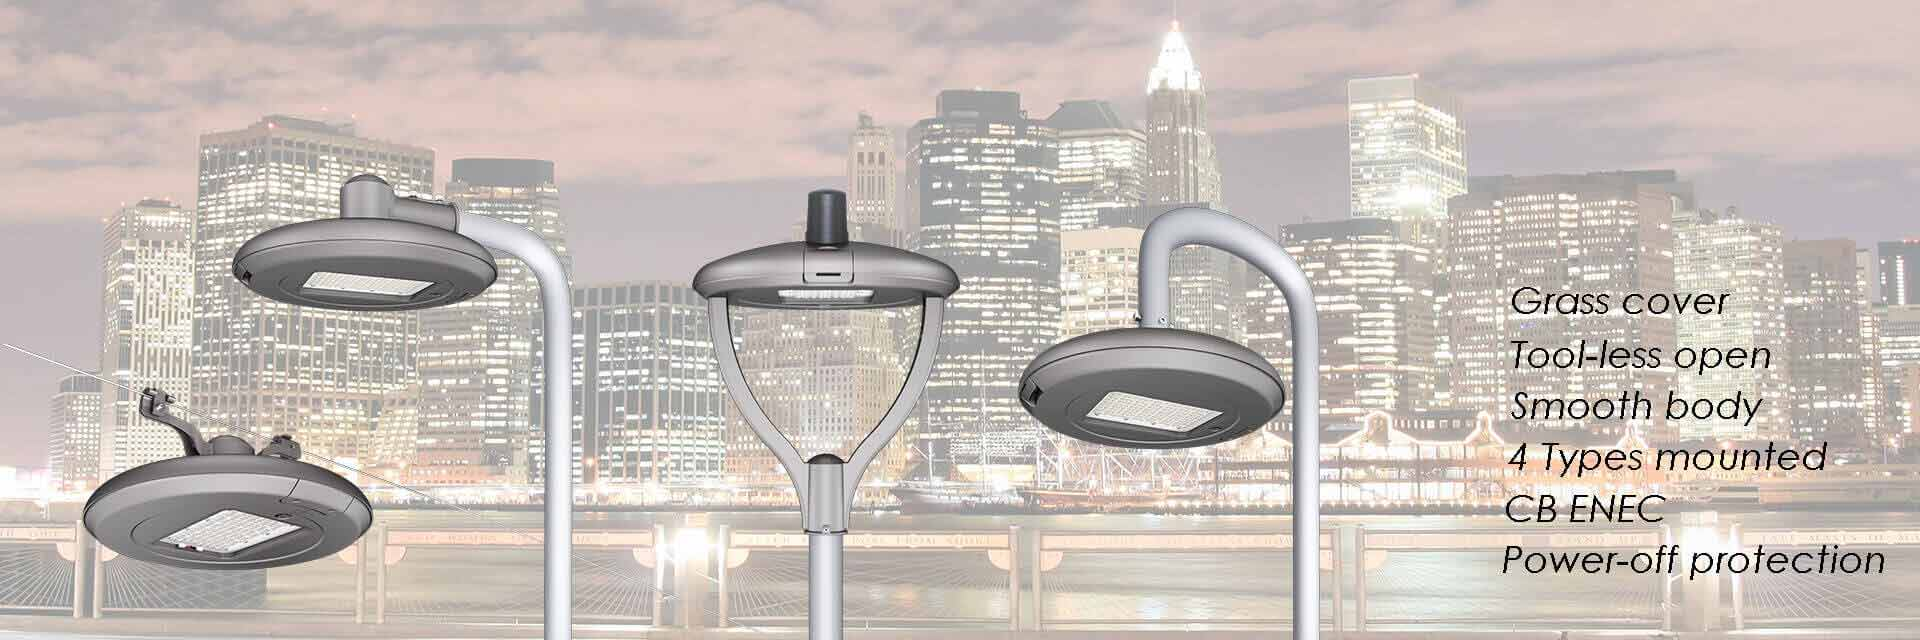 LED URBAN LIGHT